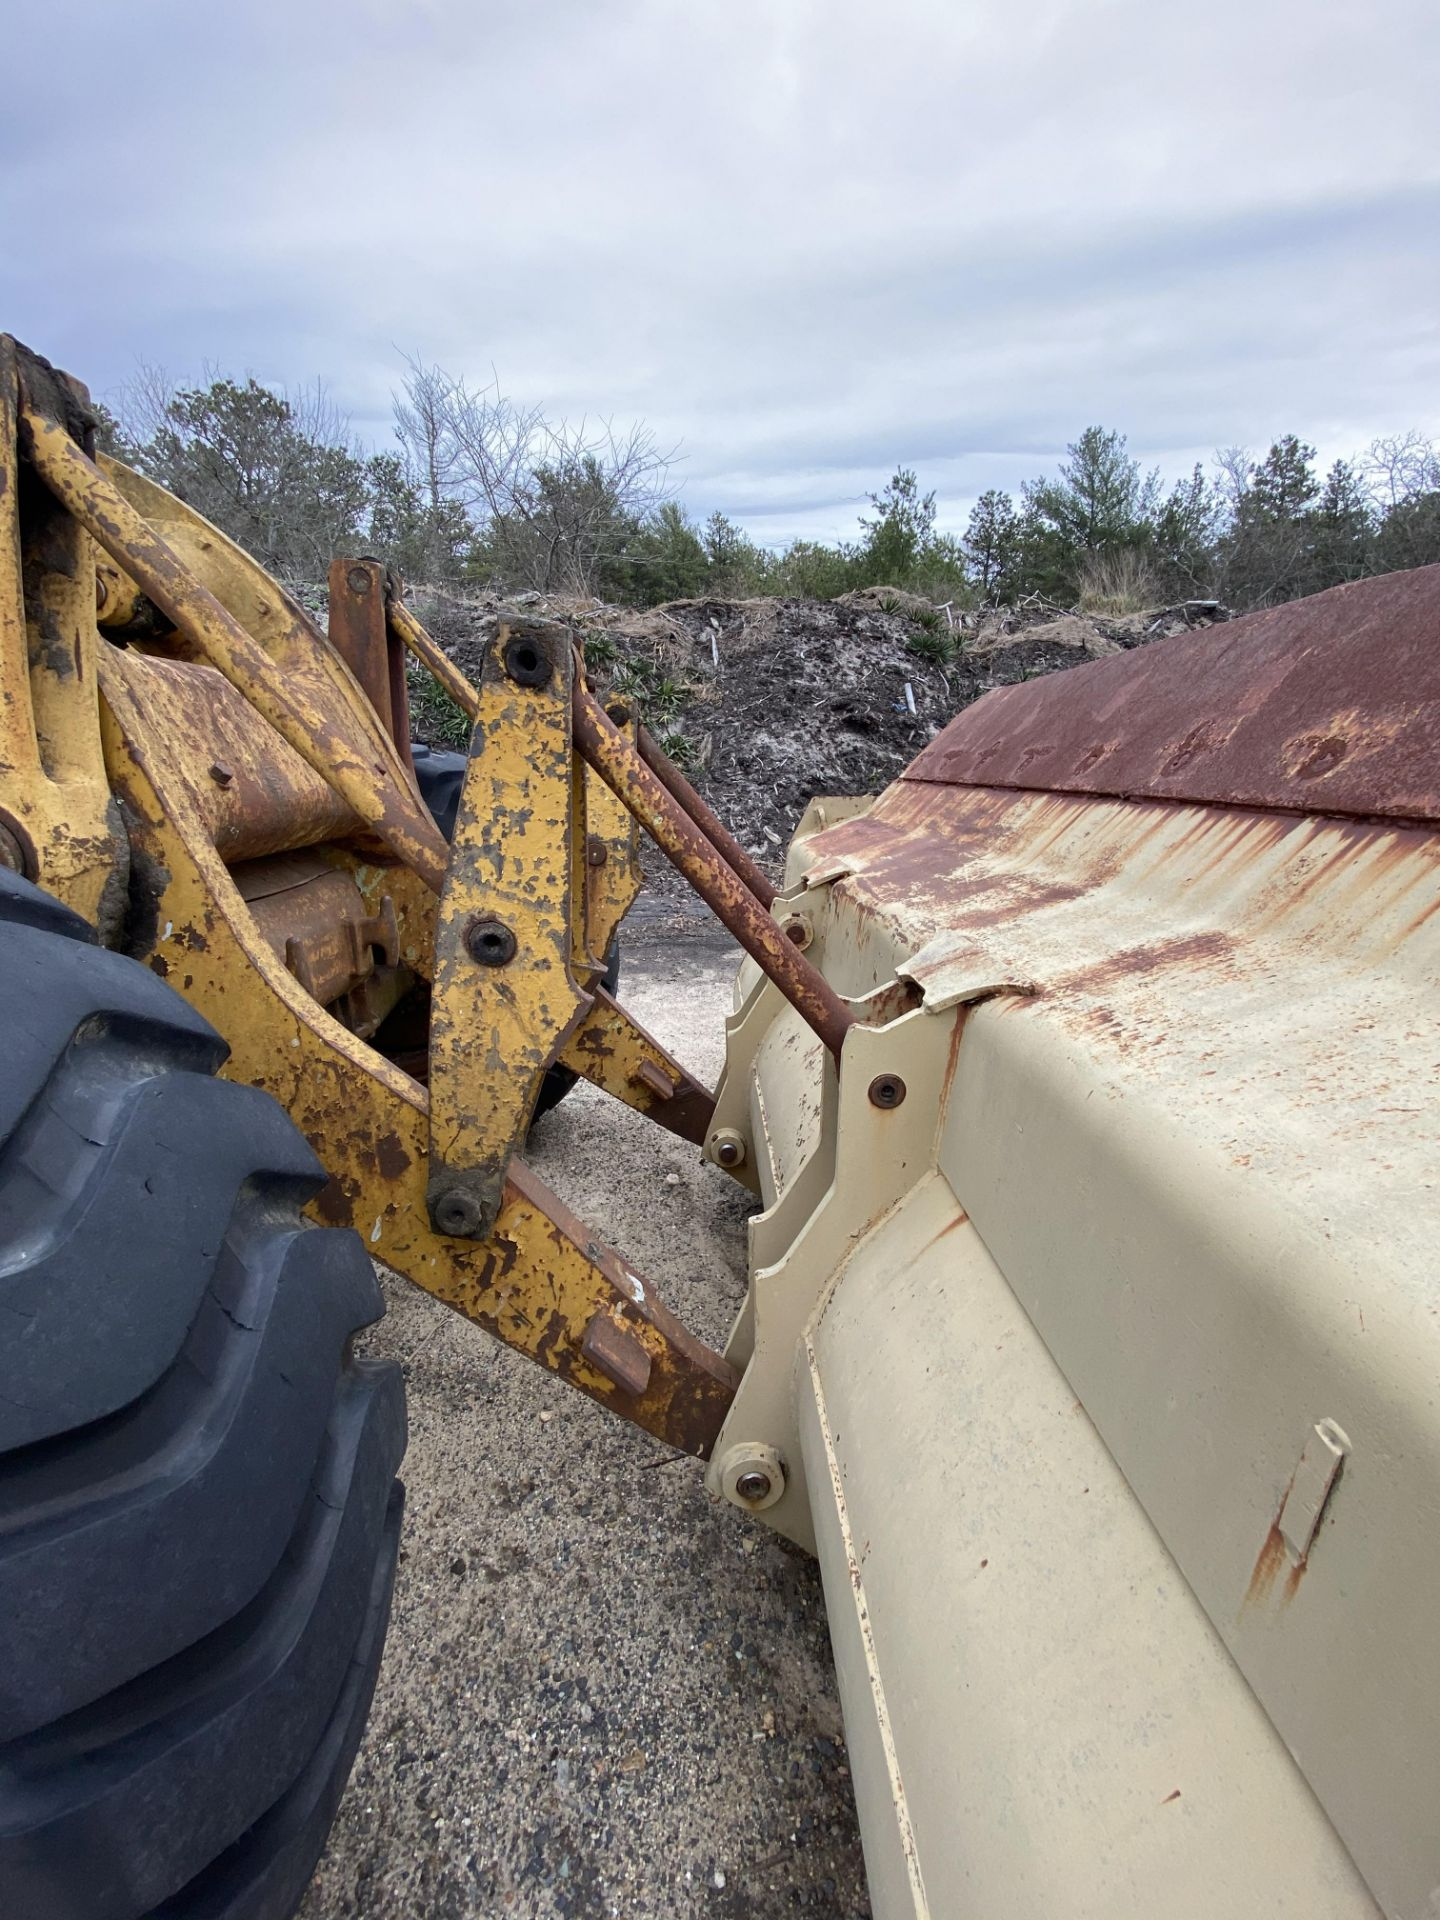 Caterpillar 966B Wheel Loader s/n 75A4794, No Title - Image 15 of 16